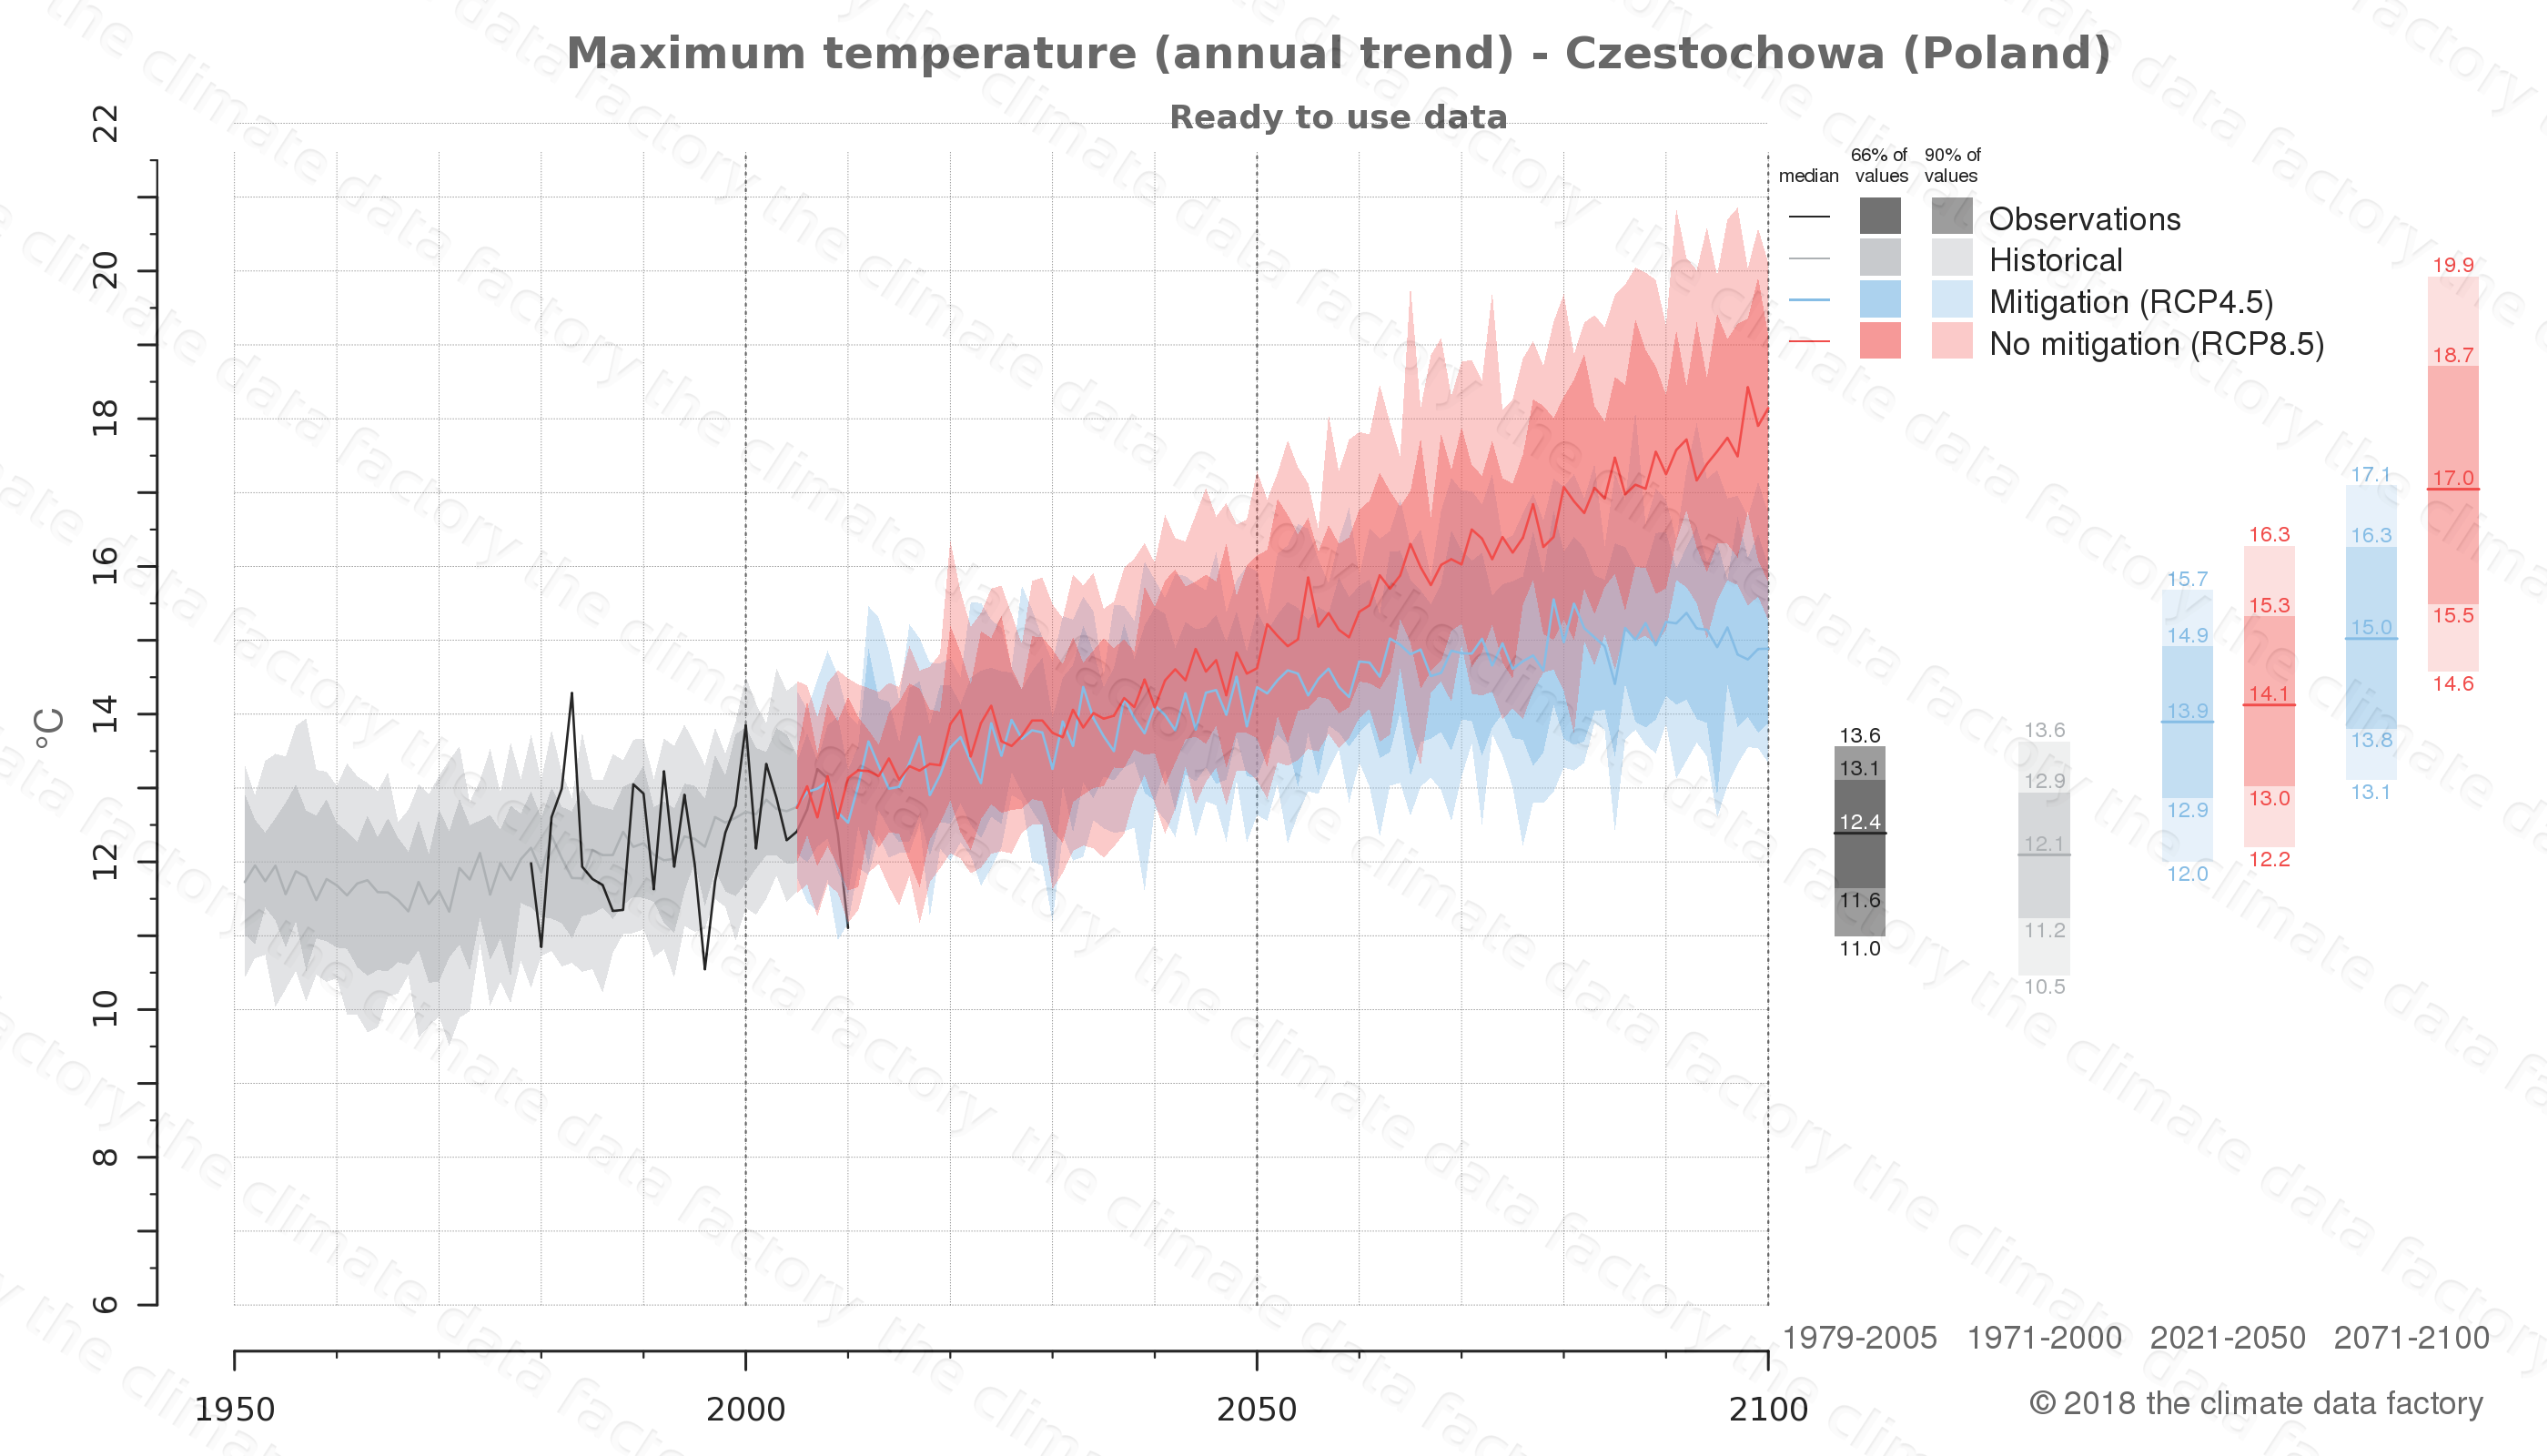 climate change data policy adaptation climate graph city data maximum-temperature czestochowa poland